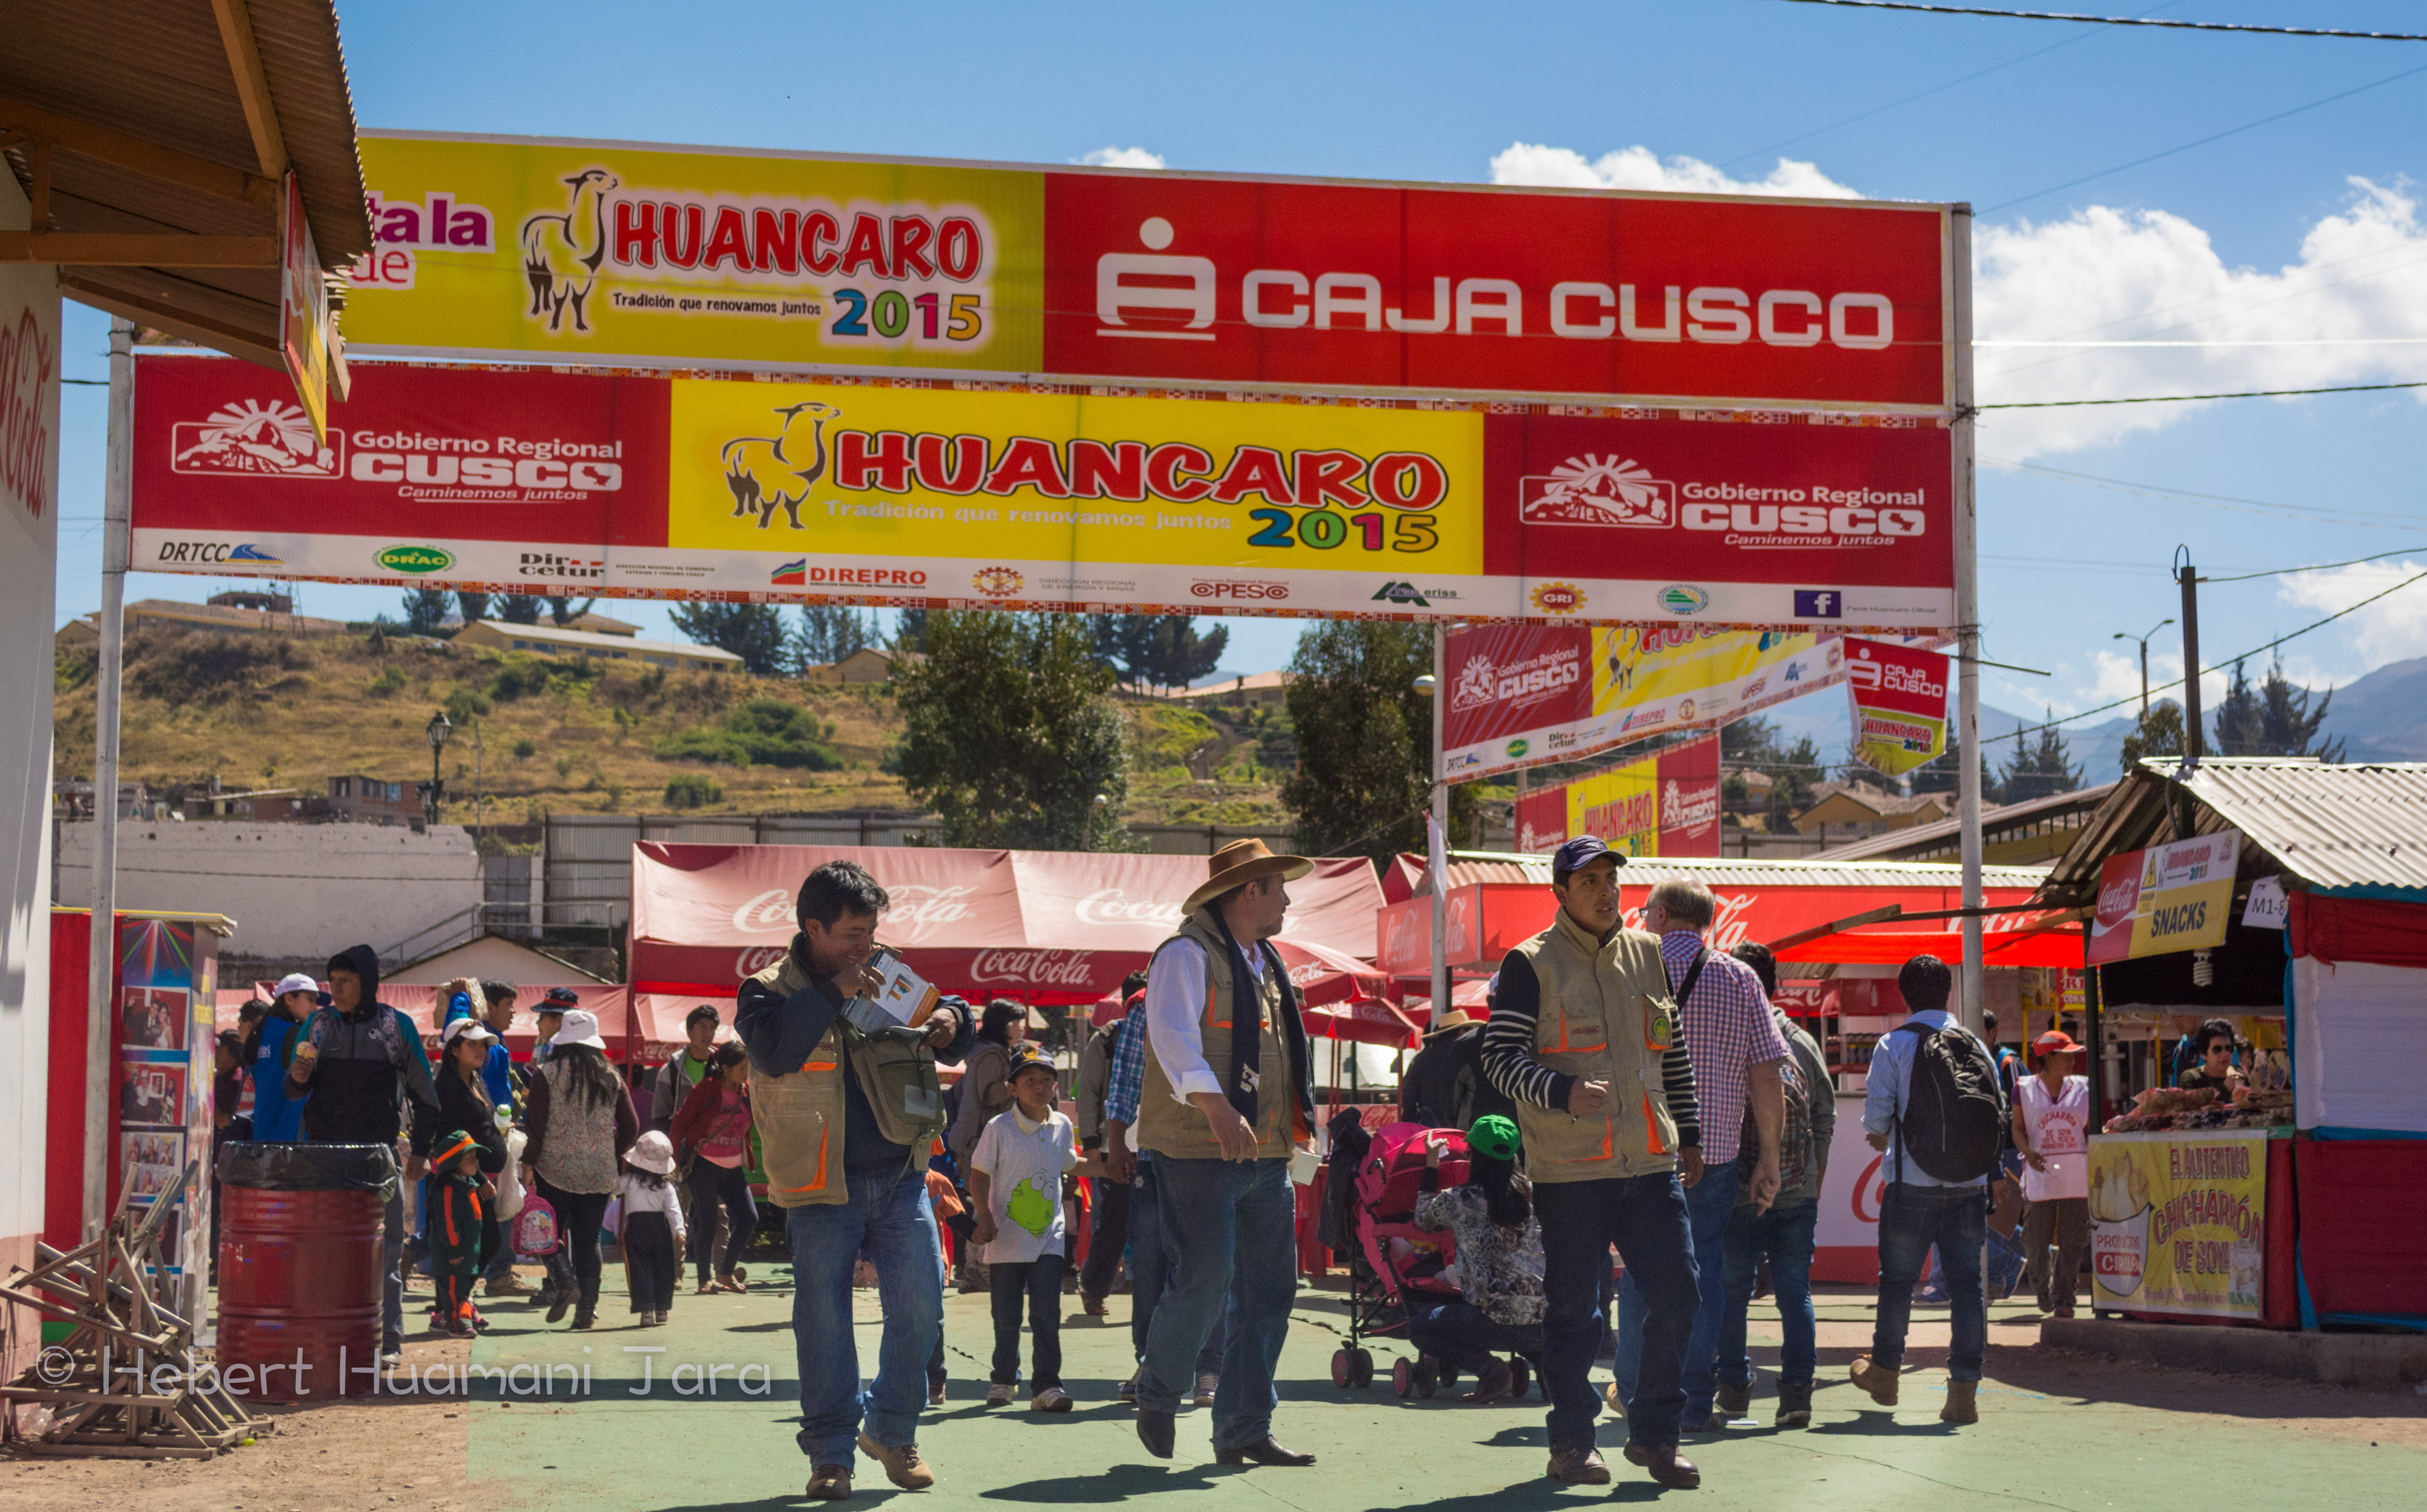 The Entrance of Huancaro Fair